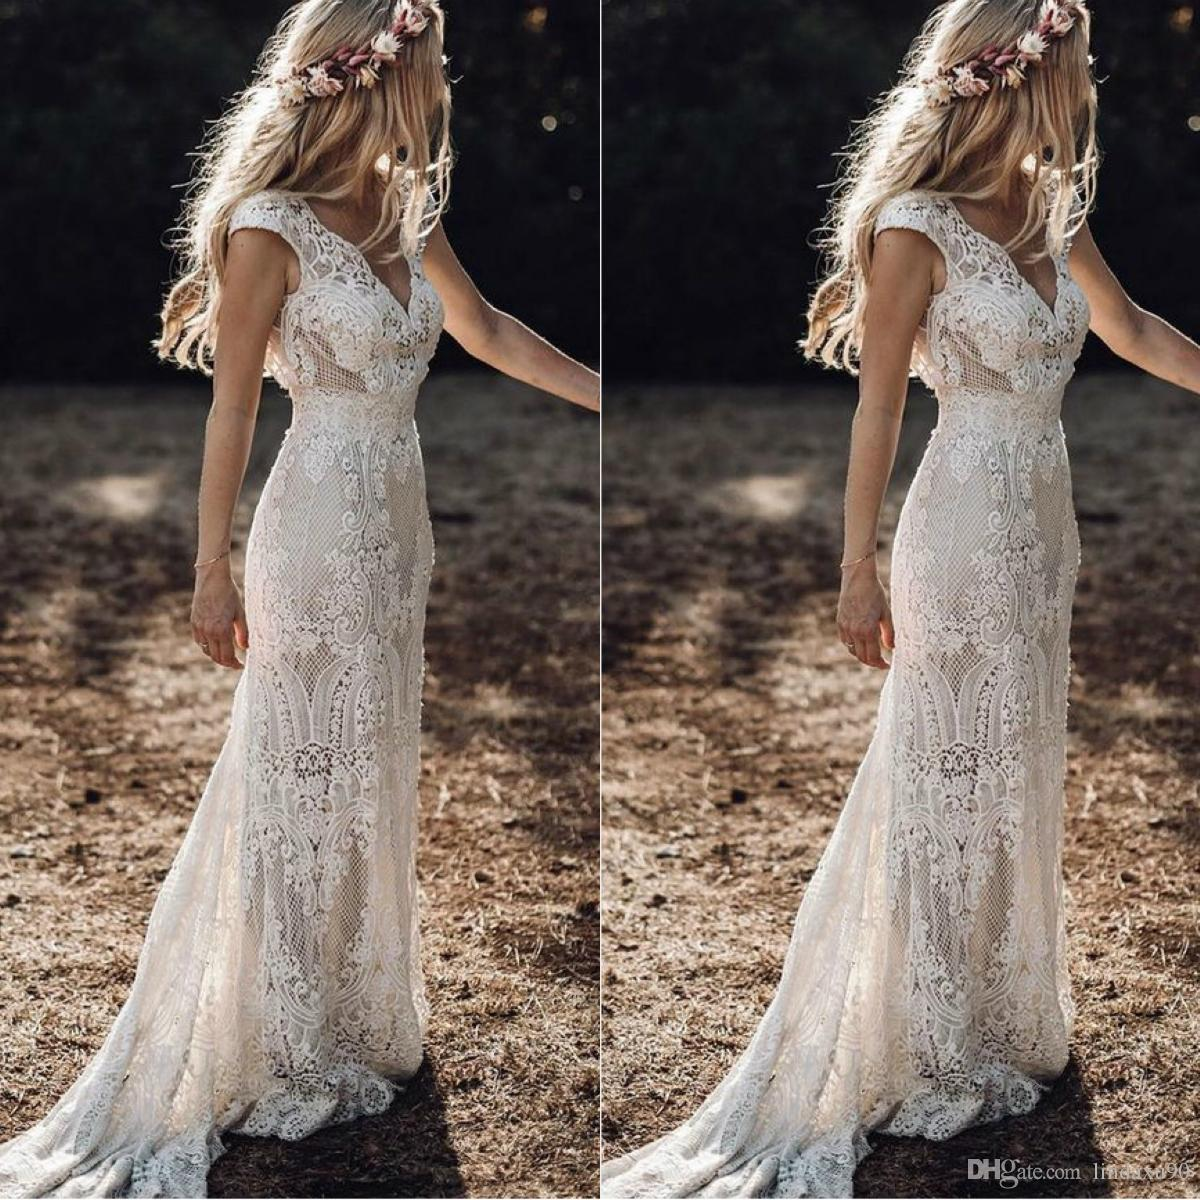 Vintage 2019 Berta Full Lace Mermaid Wedding Dresses V Neck Cap Sleeve Bridal Gowns Bohemian Beach Garden Custom Made vestido de novia